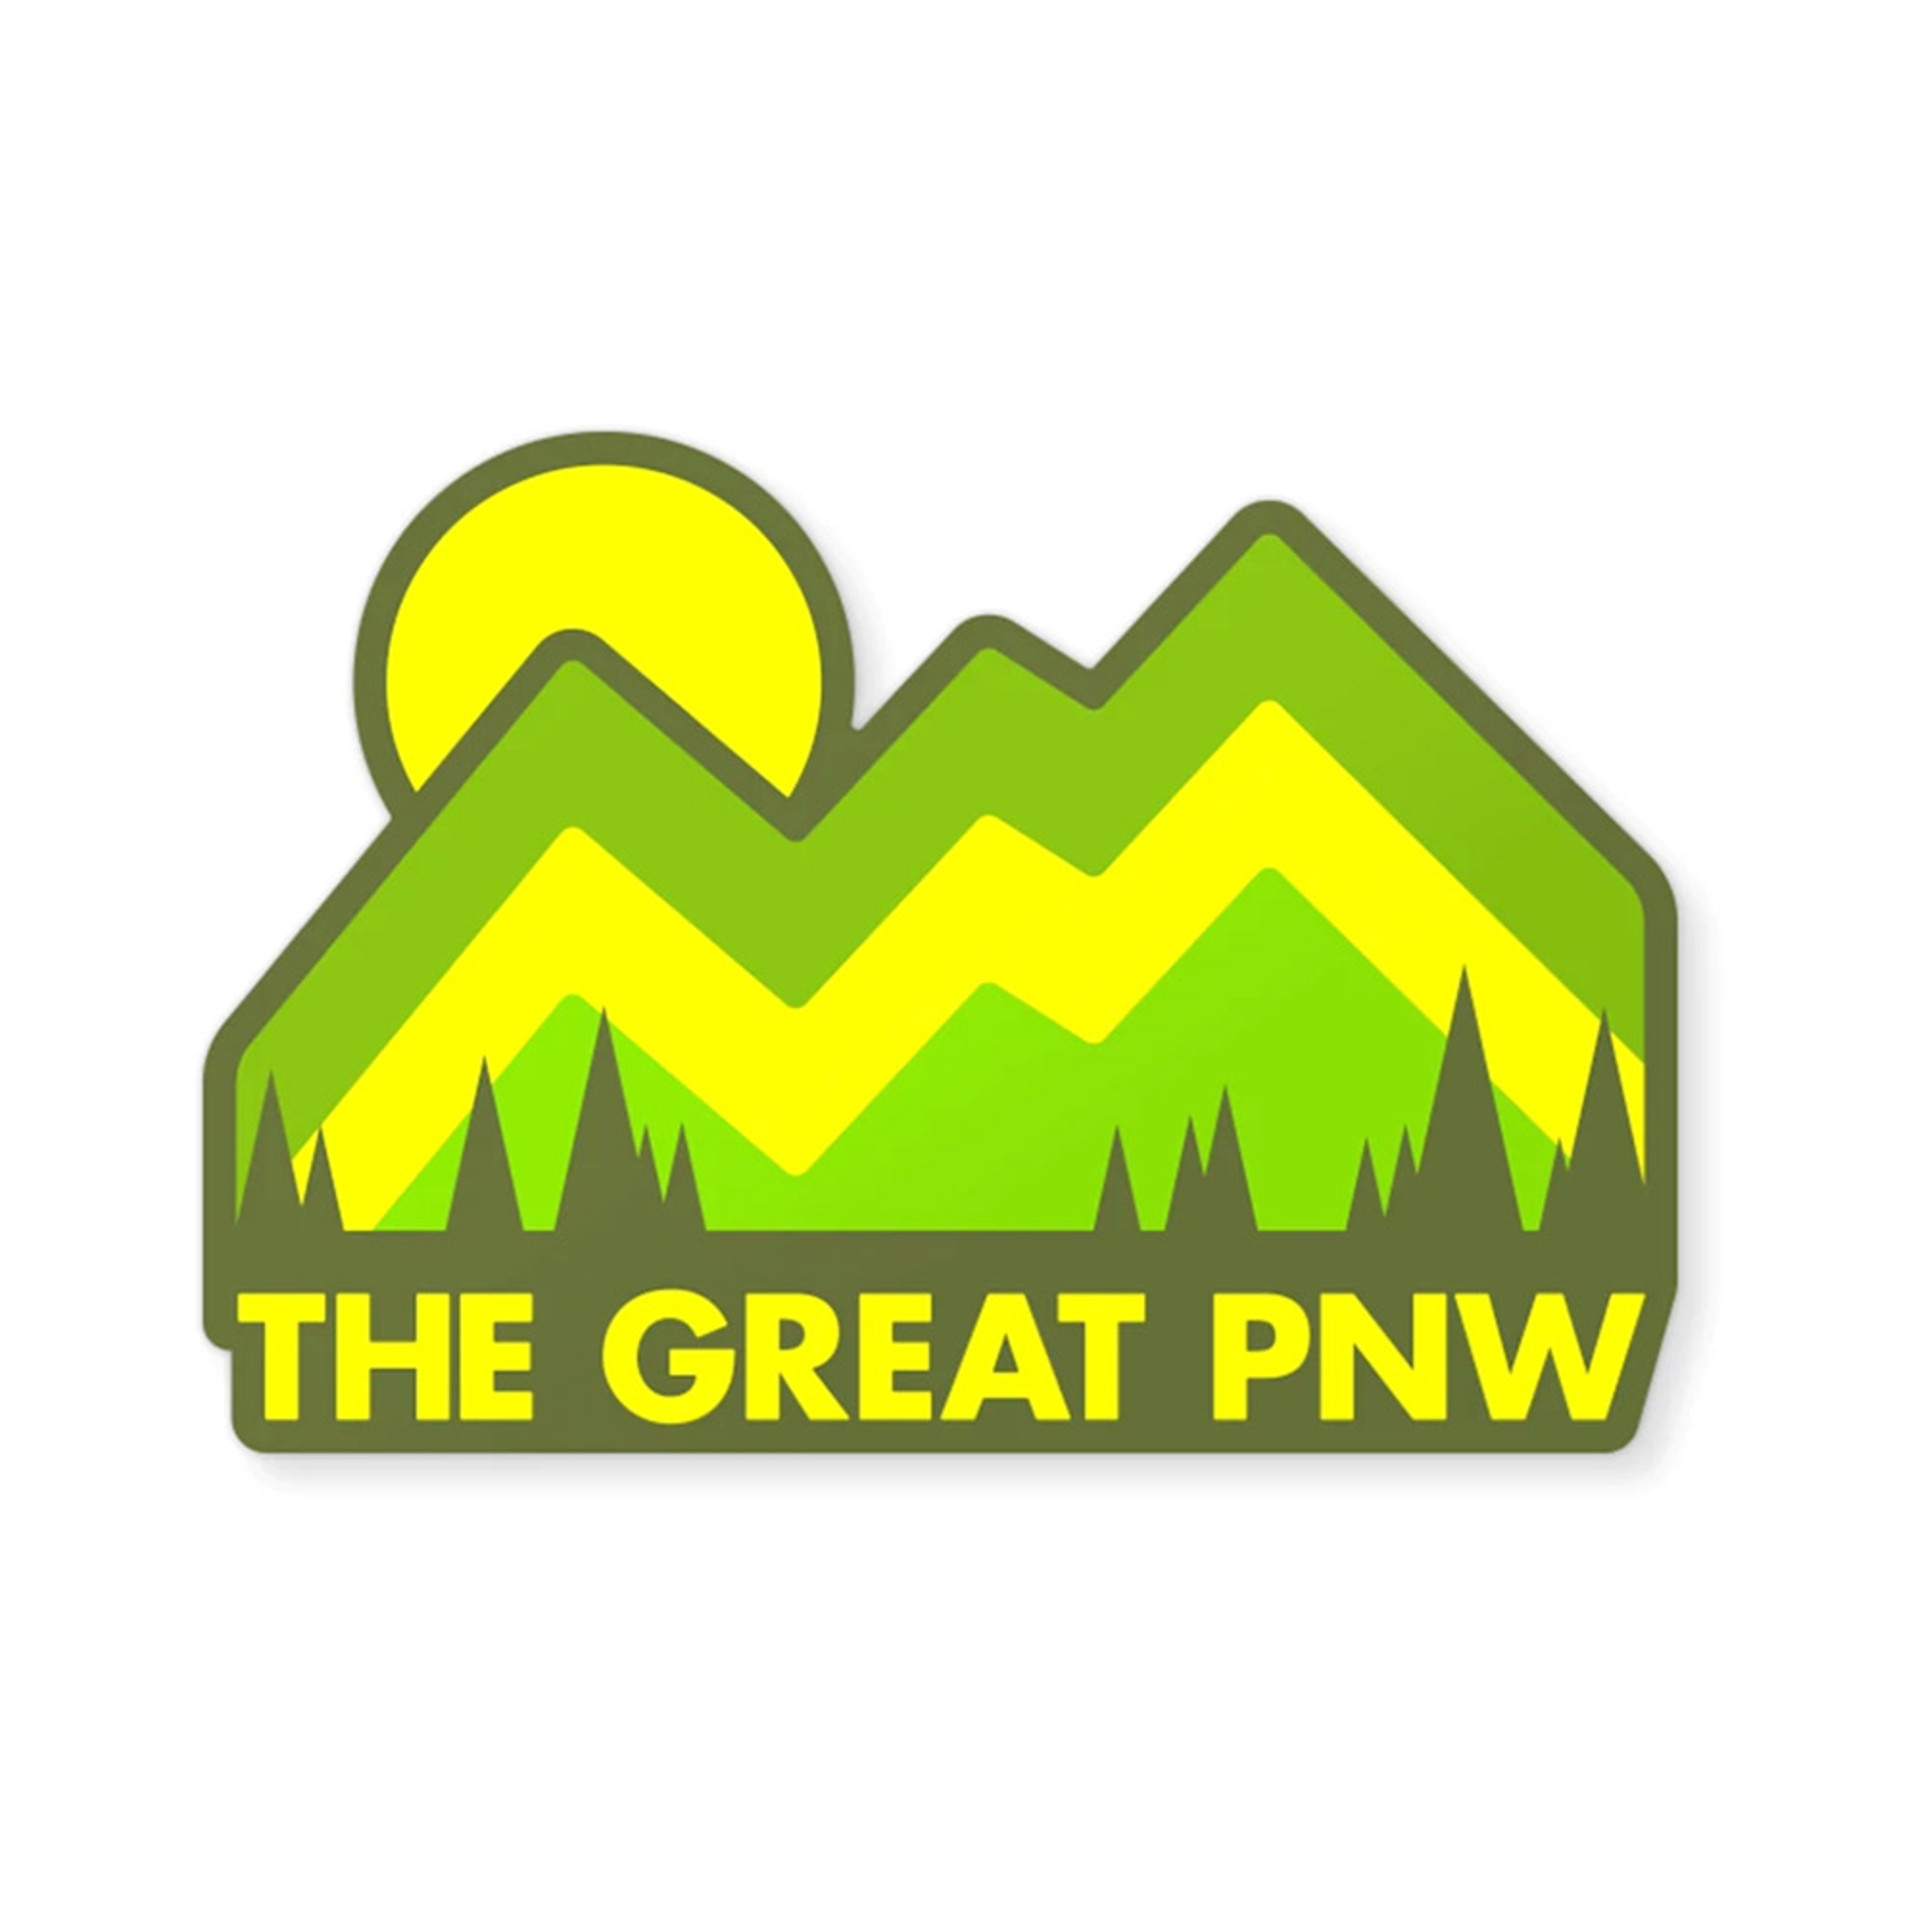 Great PNW Expedition Sticker